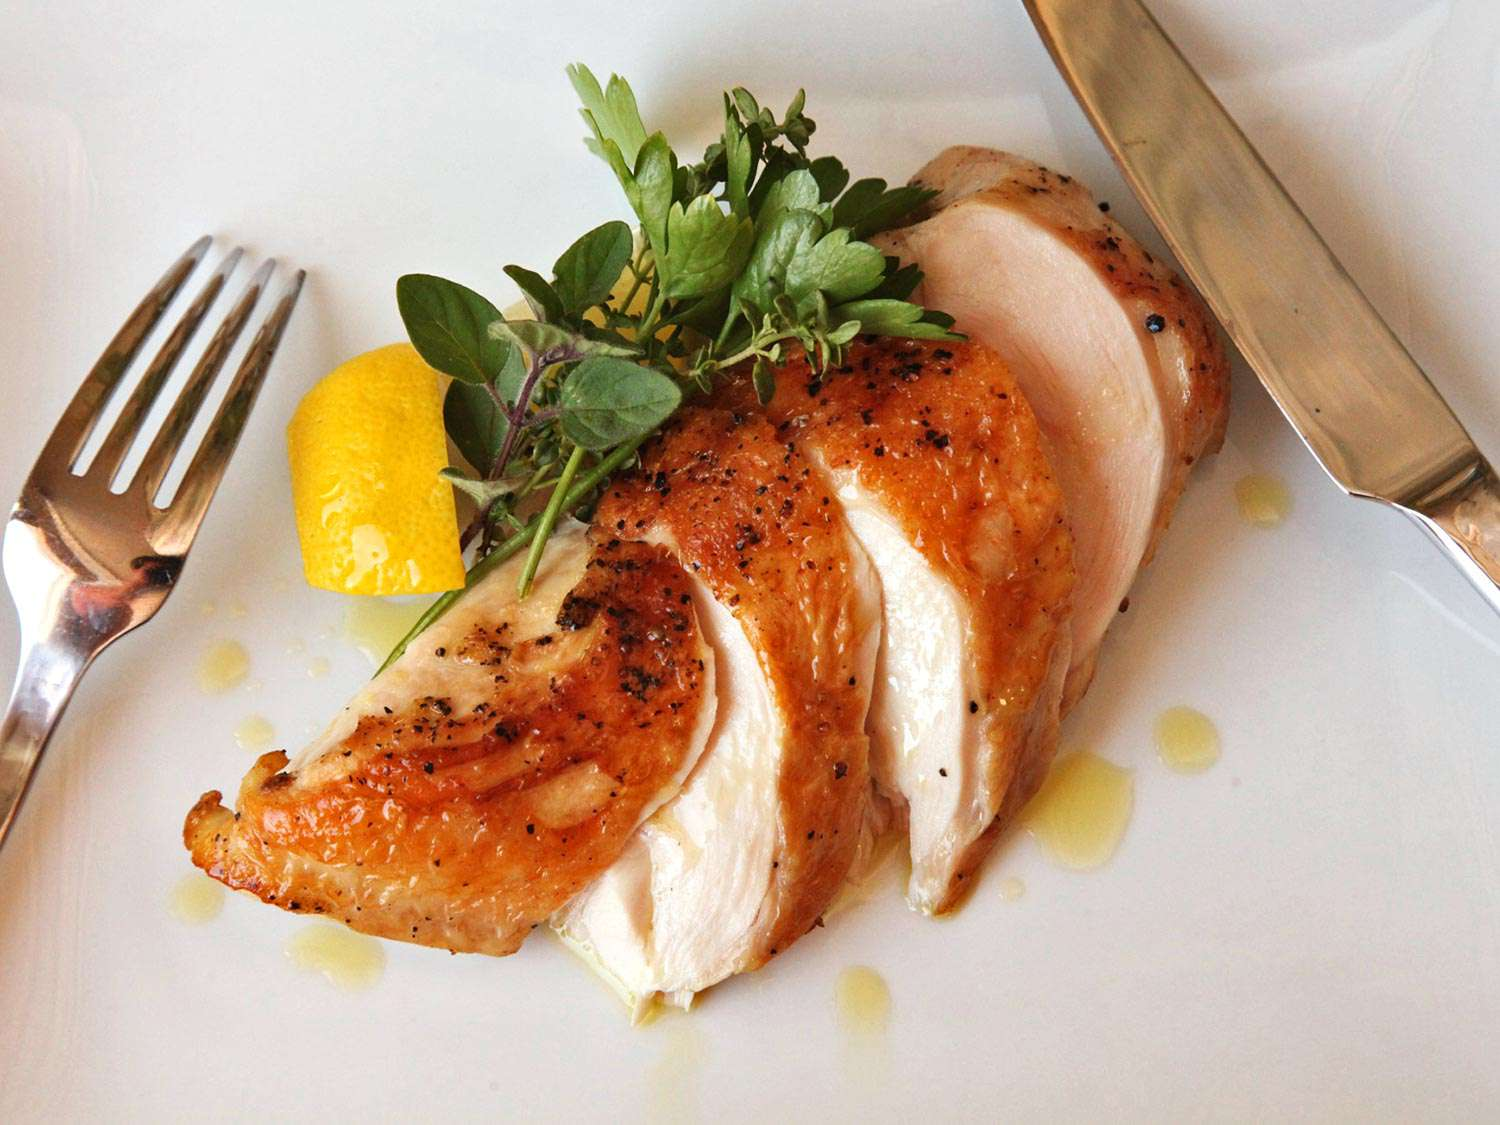 Sous vide chicken breast, cut on a bias and garnished with herbs and a lemon wedge